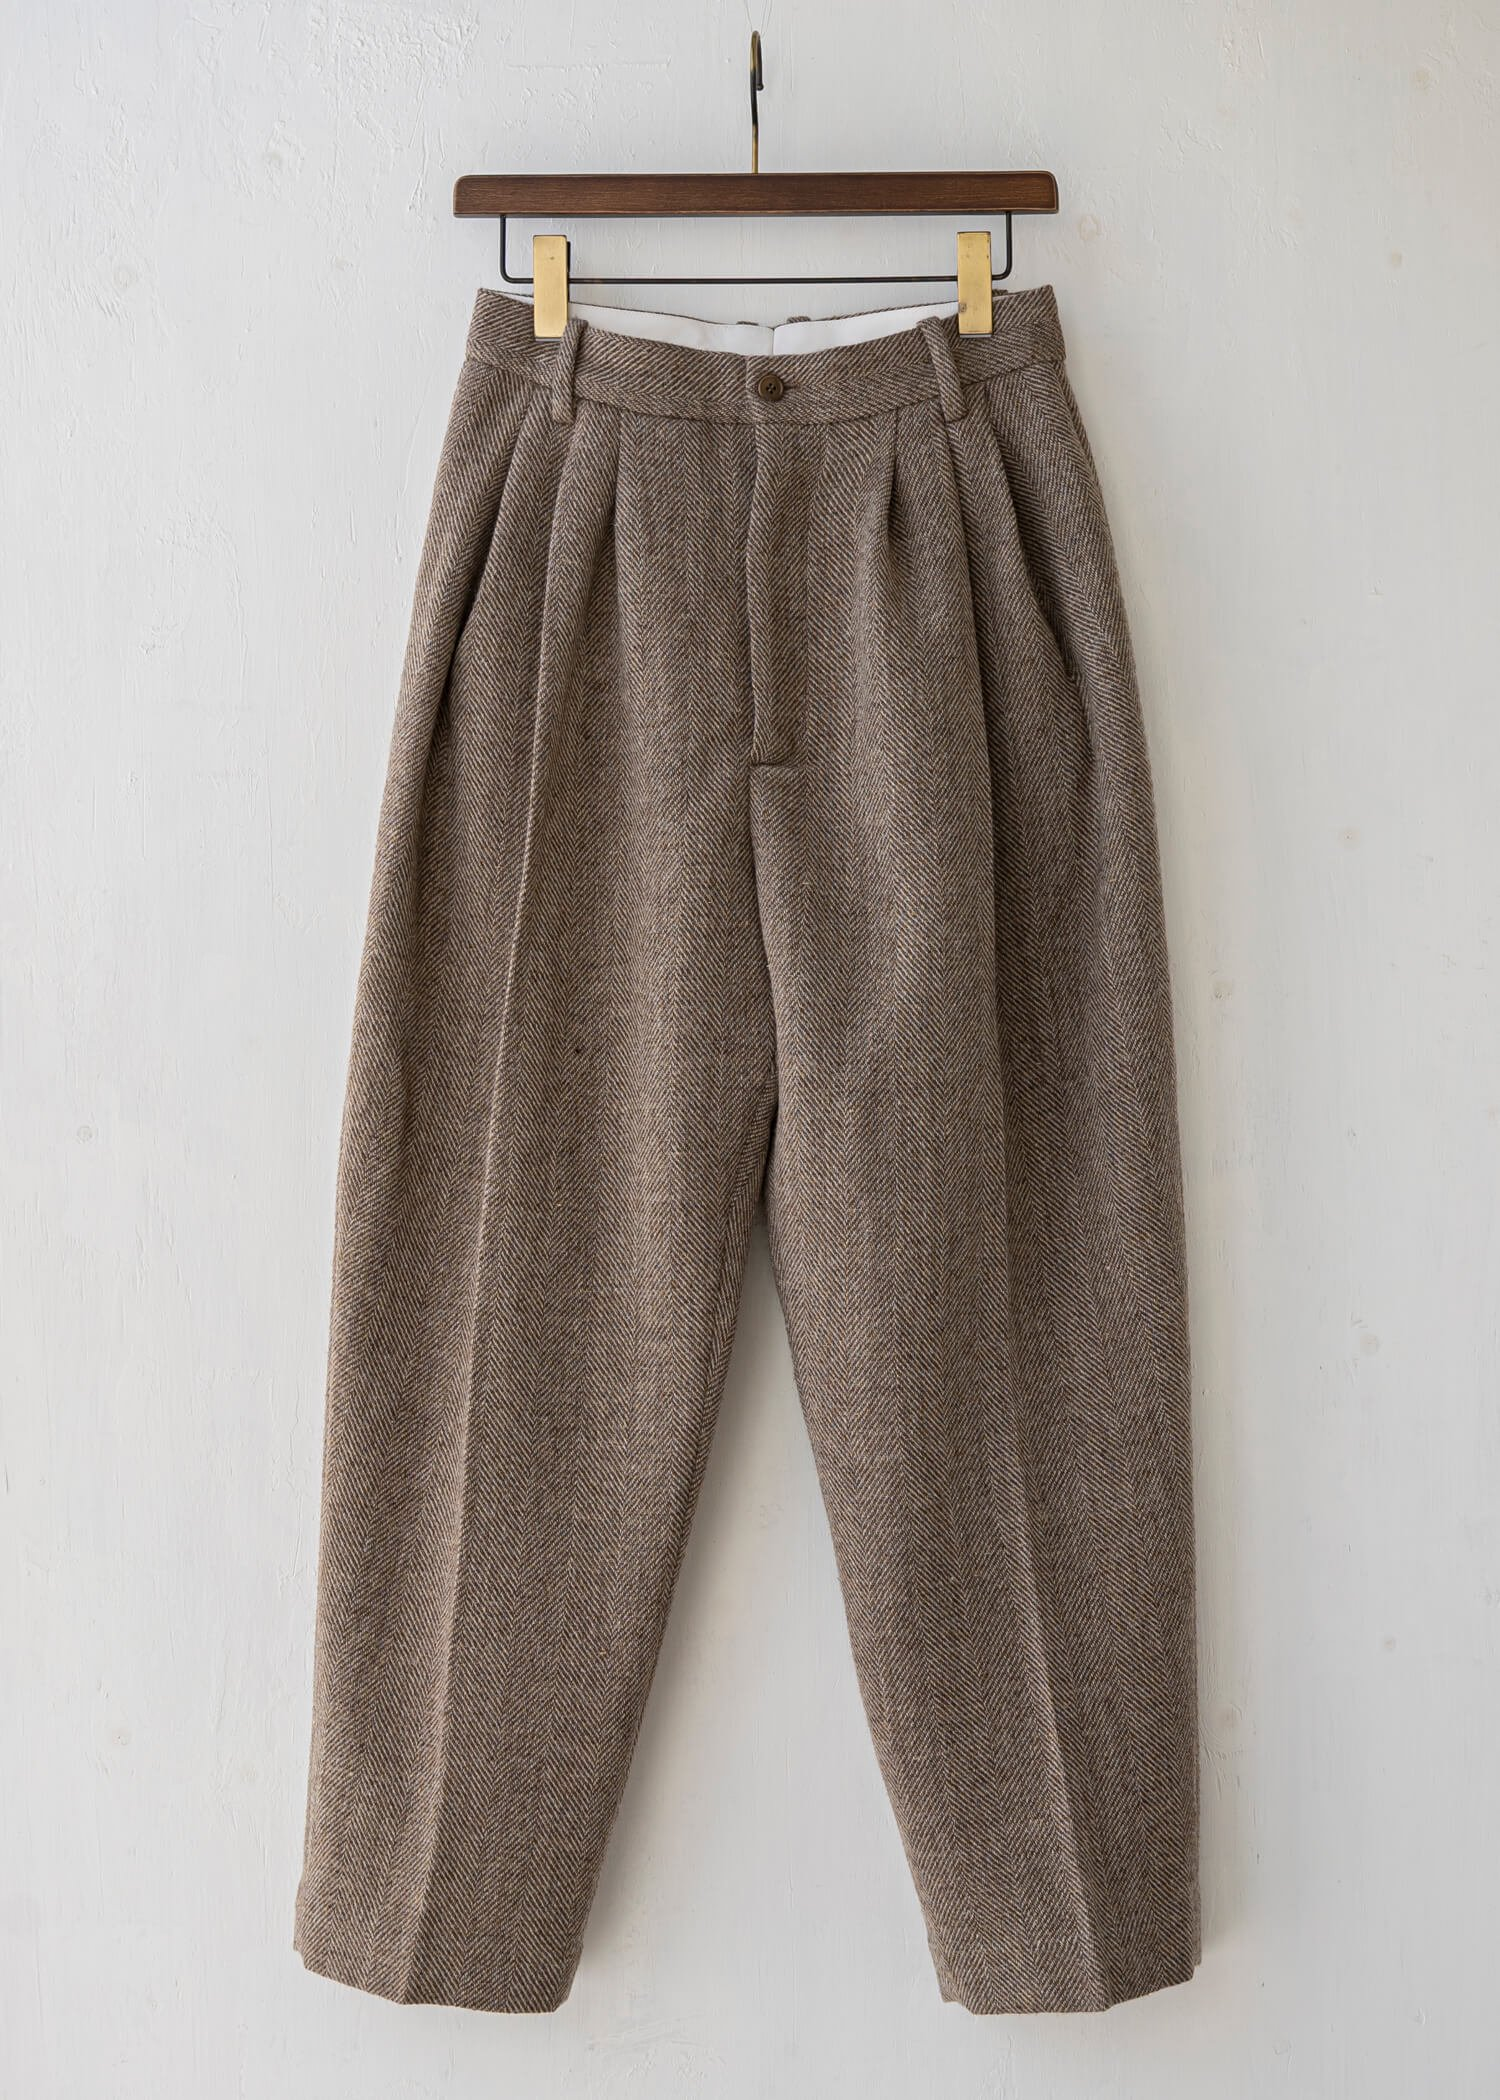 HED MAYNER / 4 PLEAT PANT